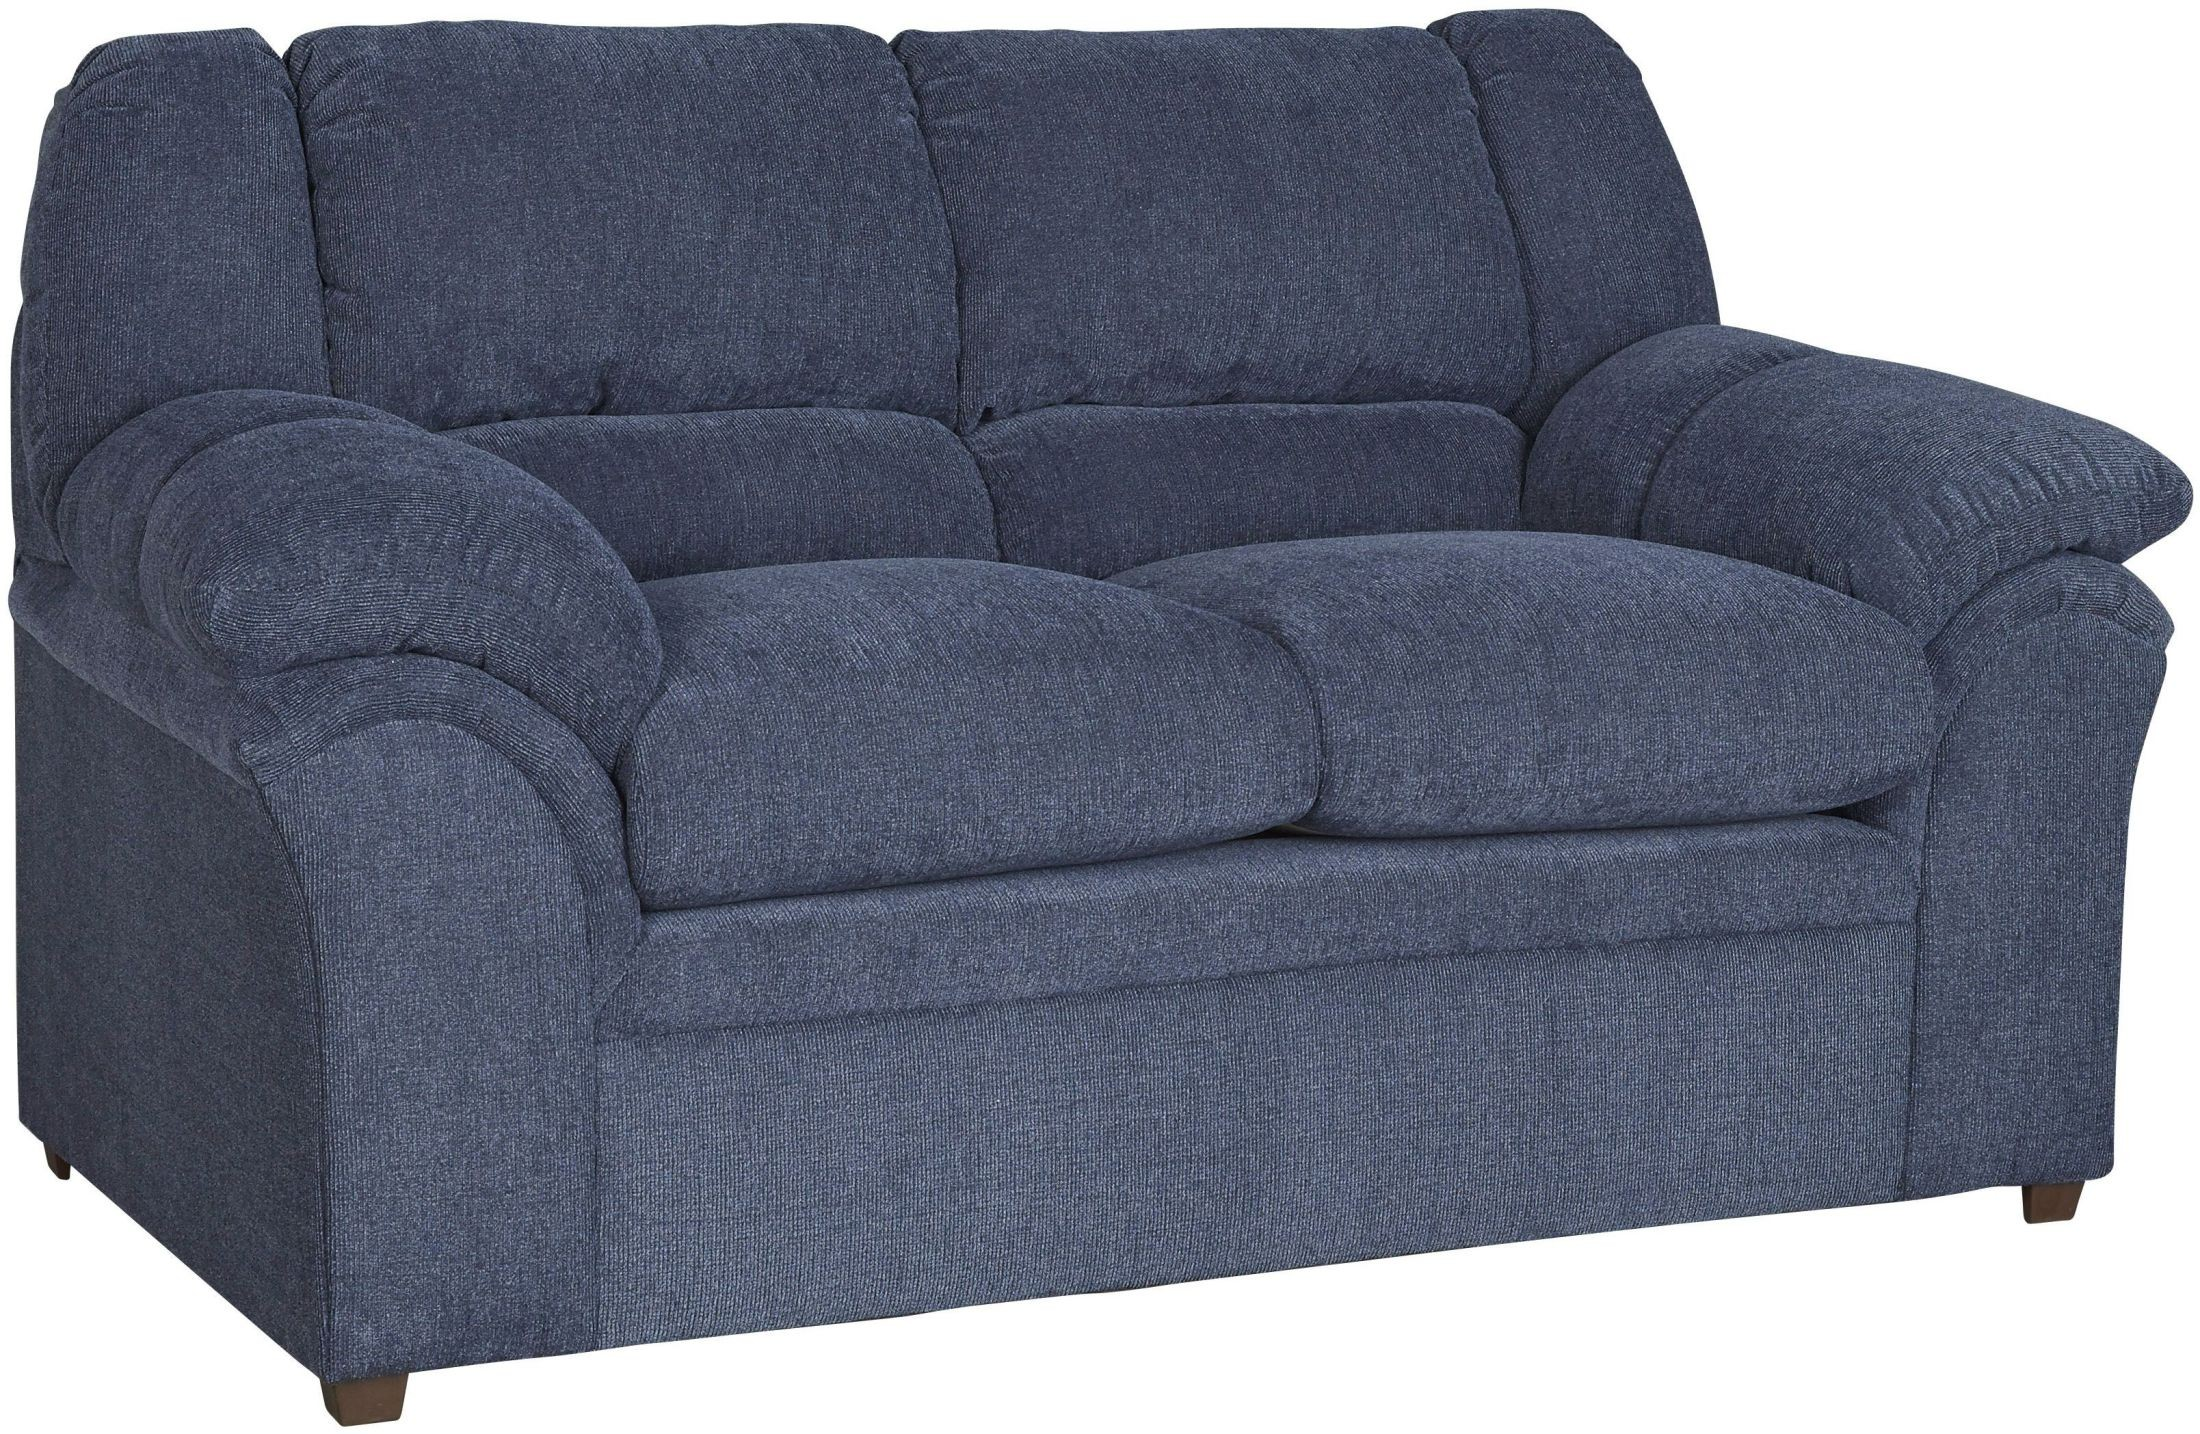 big ben indigo loveseat from progressive furniture